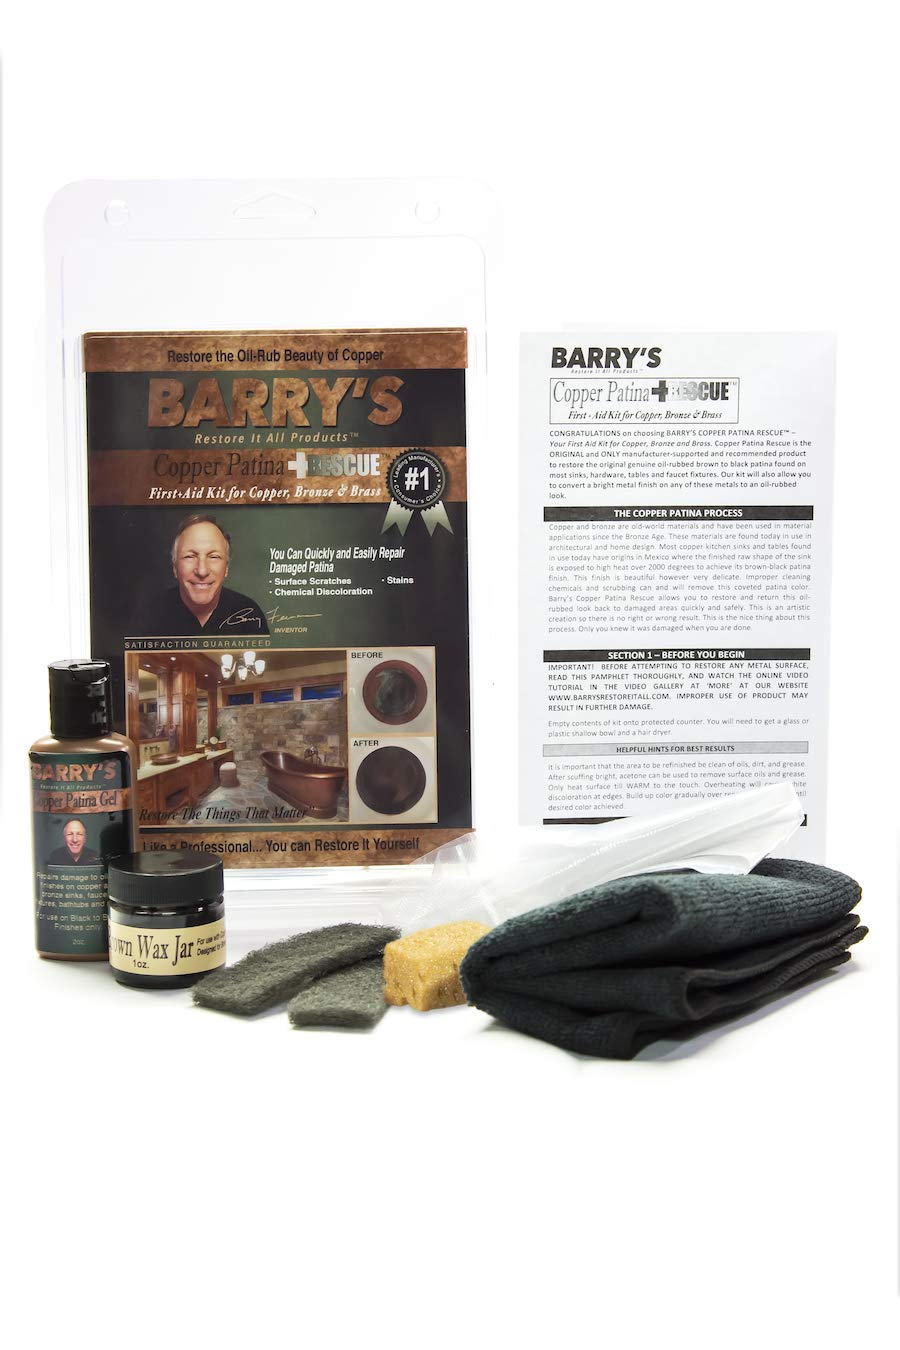 Barry's Restore It All Products - Copper Patina Rescue Homeowner Kit by Barry's Restore It All Products (Image #1)